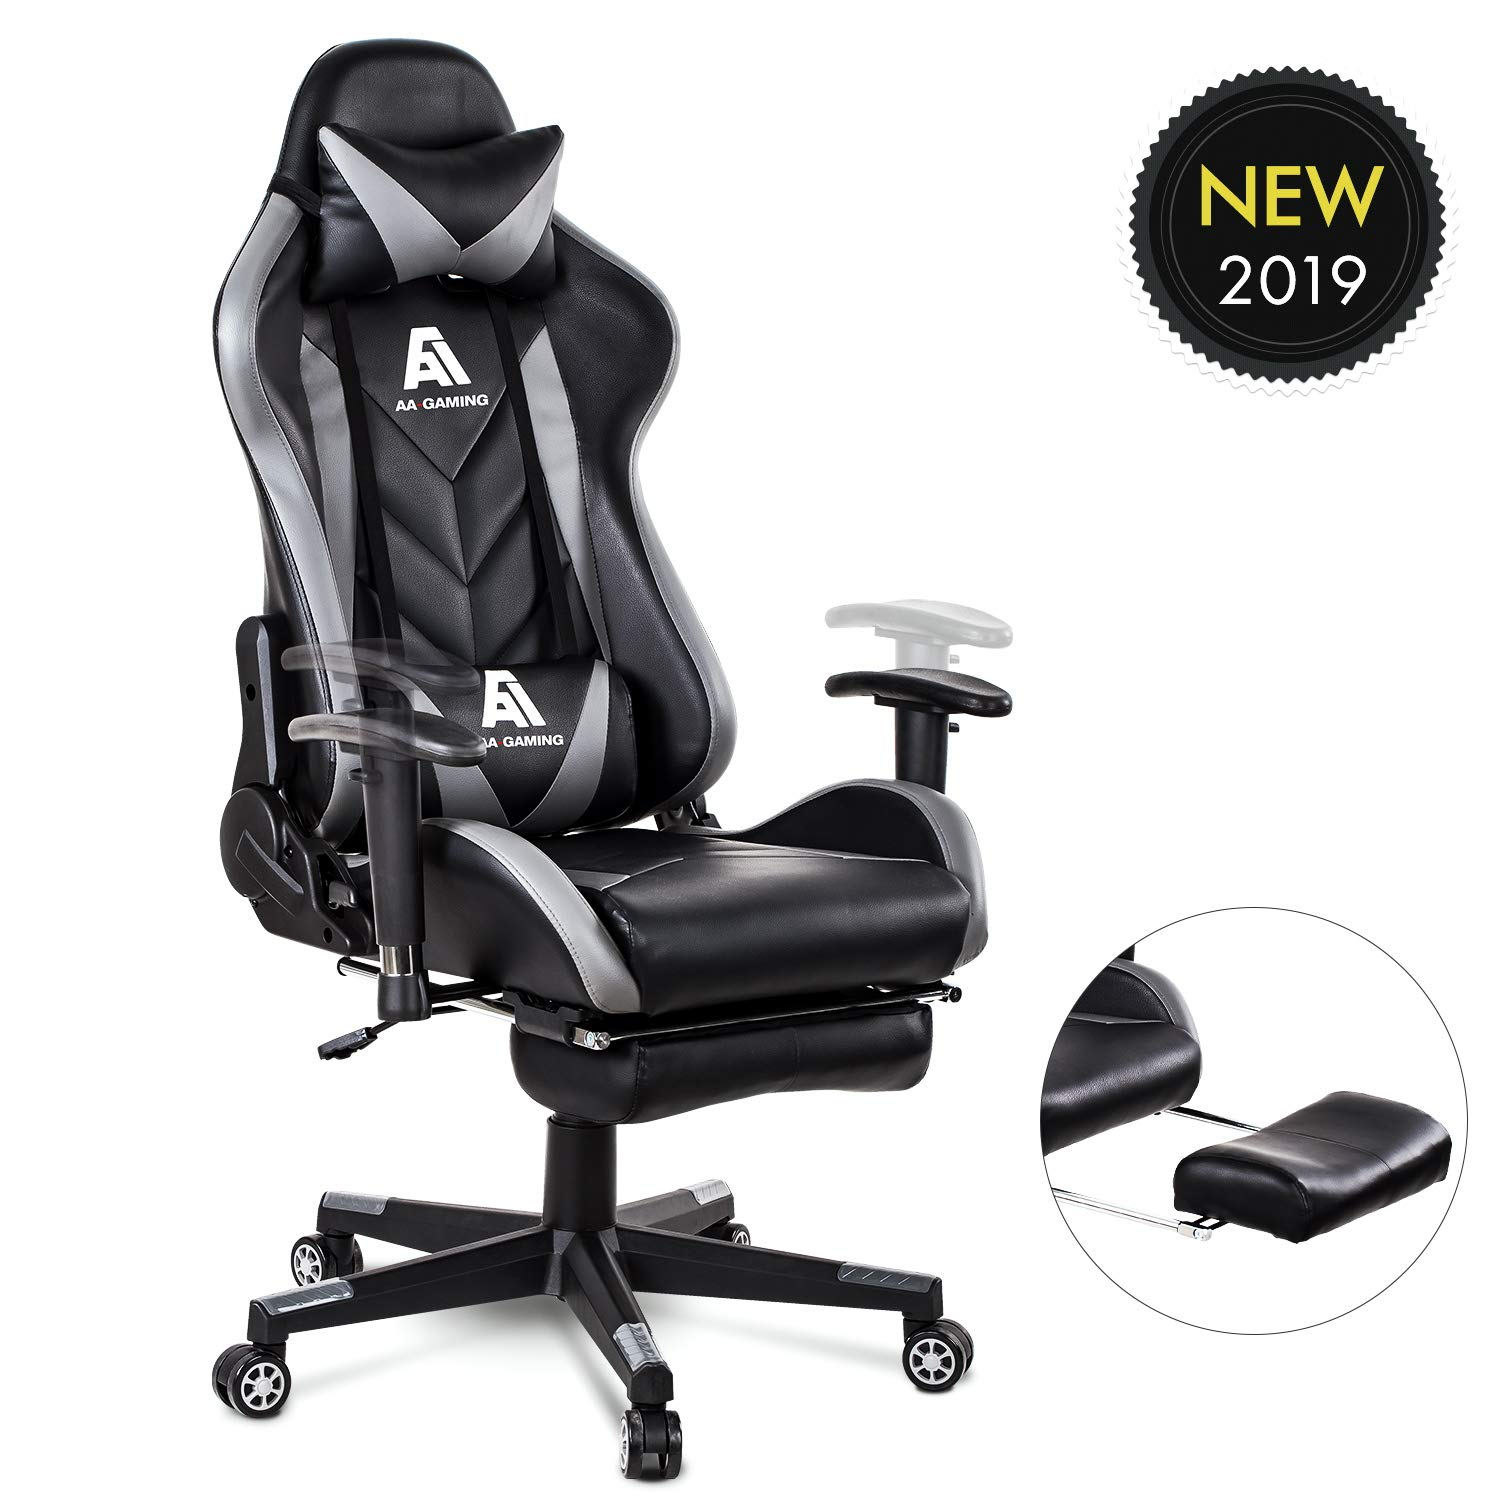 AA Products Gaming Chair High Back Ergonomic Computer Racing Chair Adjustable Office Chair with Footrest, Lumbar Support Swivel Chair - Grey by AA Products Inc.